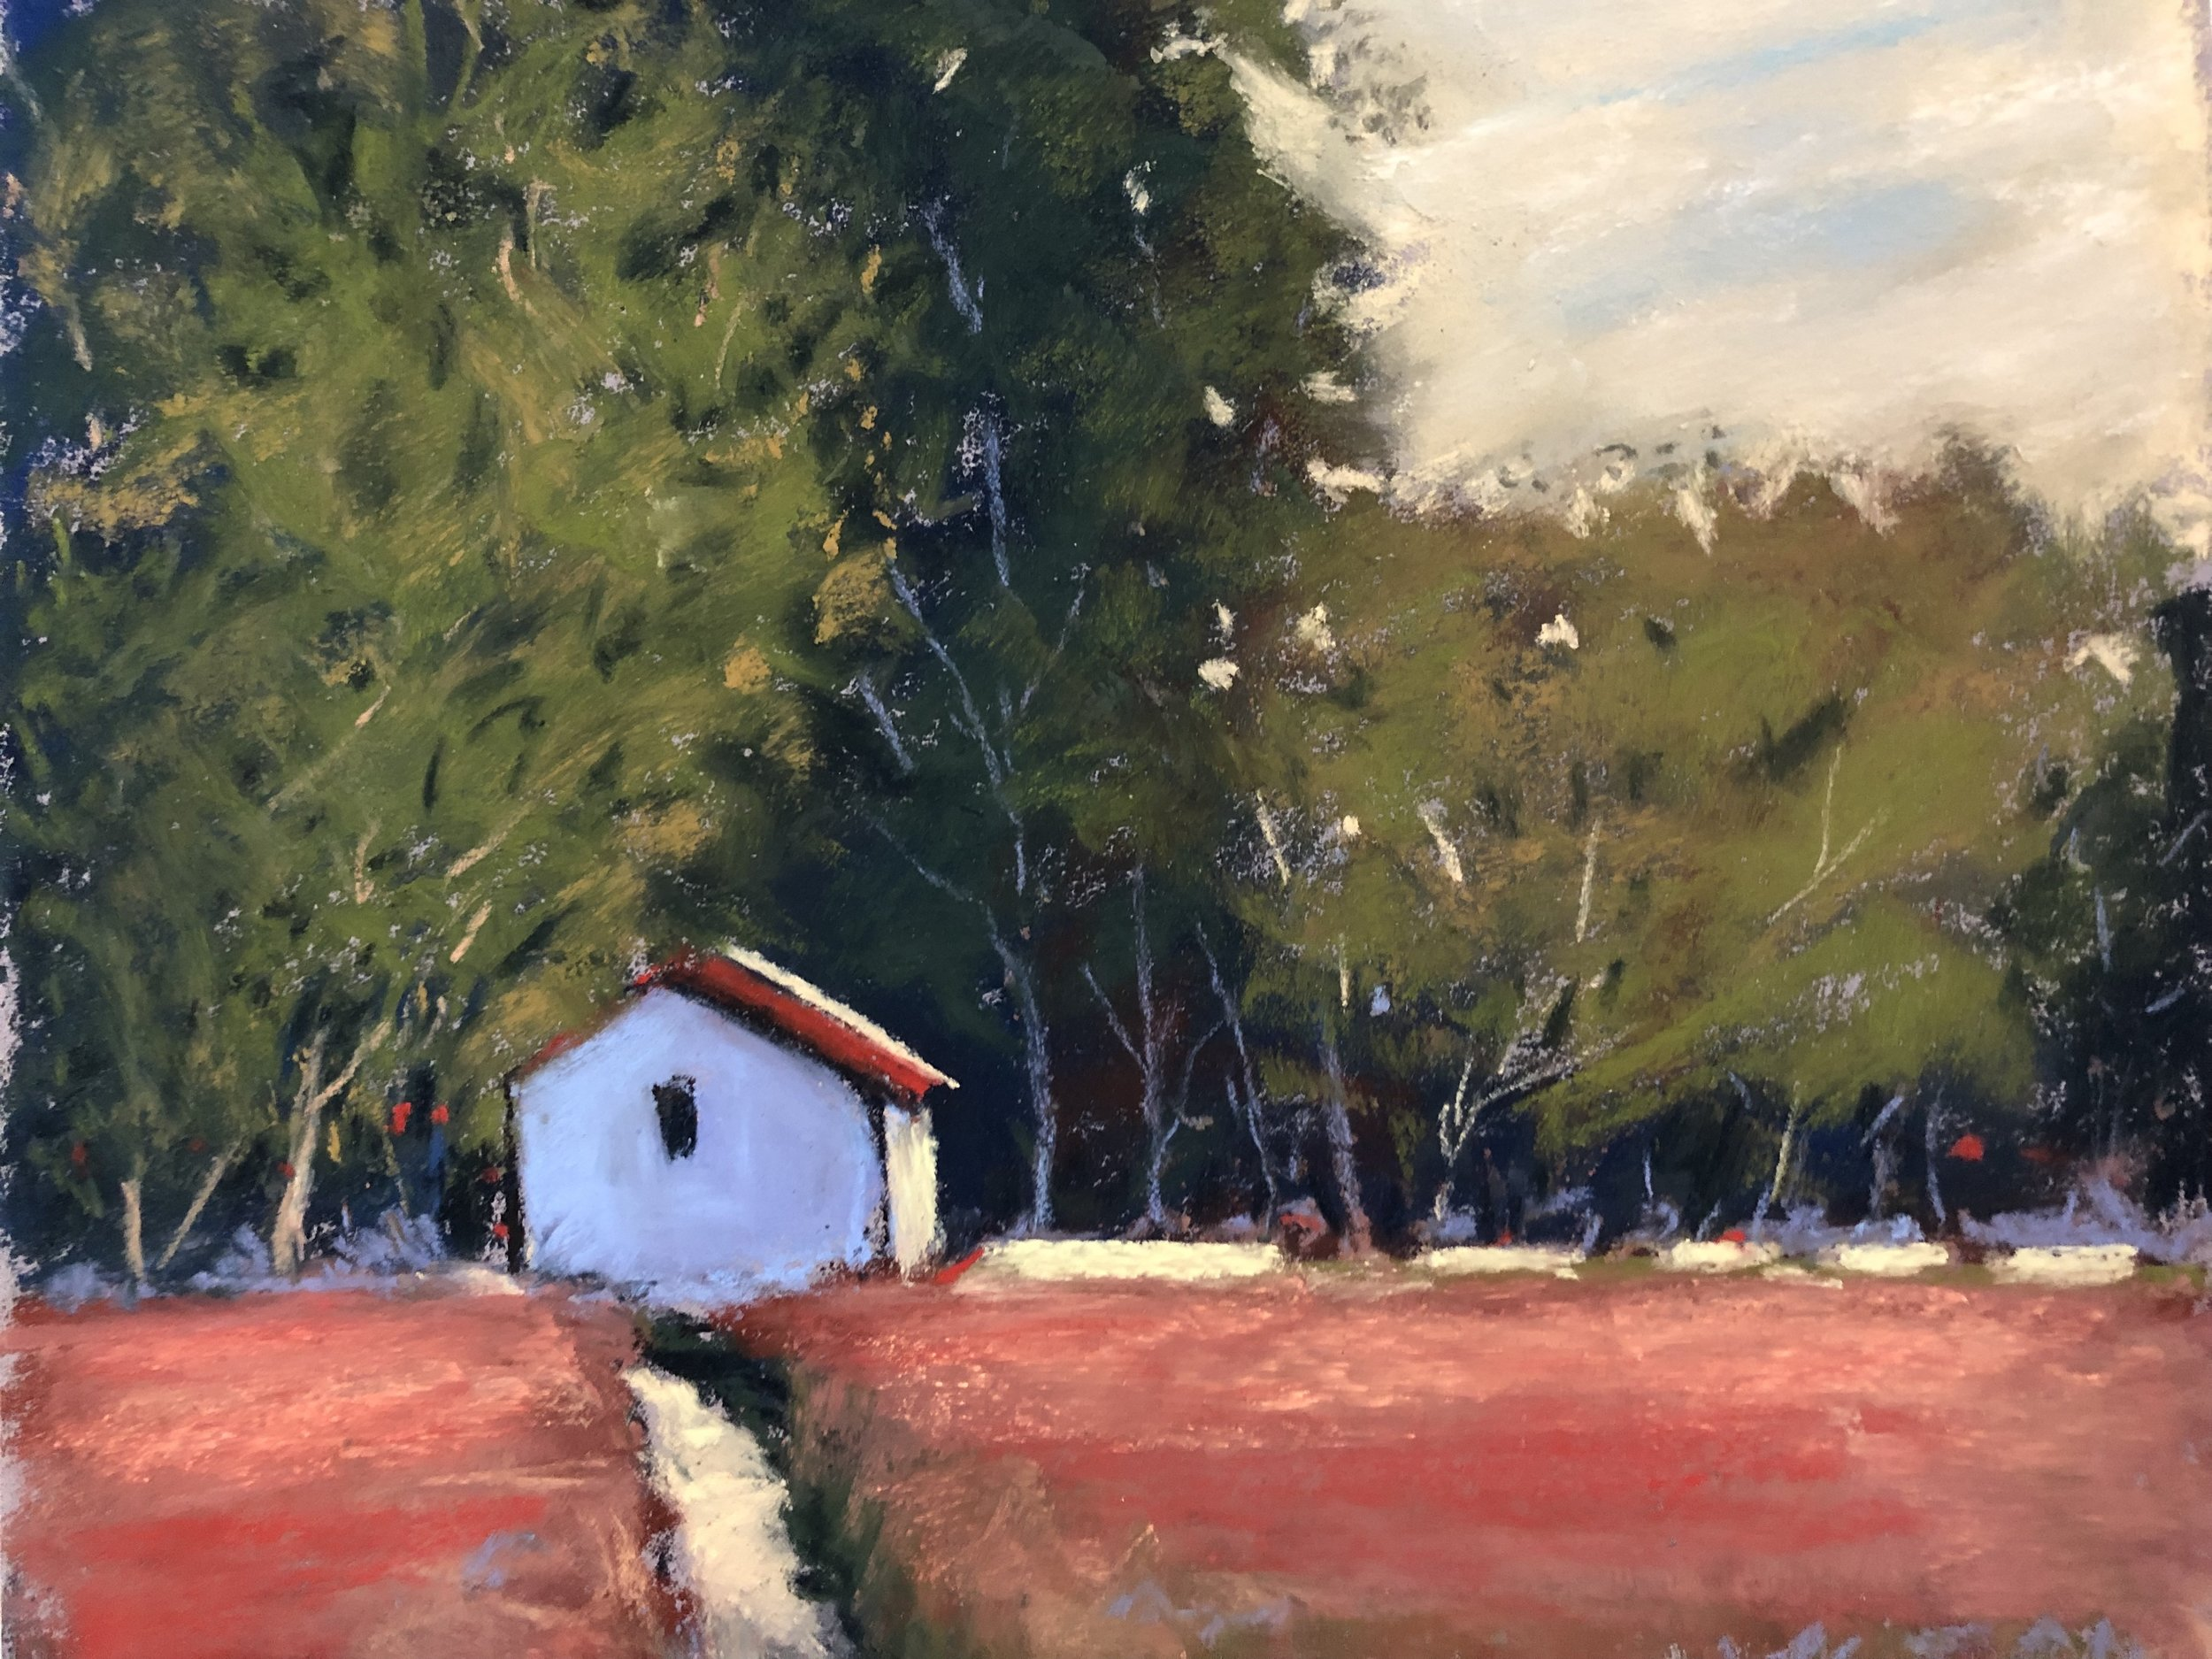 Small Red House - Medium/Materials used: Soft Pastels on Canson Mi-Teintes paper.Measurements (framed): 38cm x 41cmMeasurements (Unframed): 24cm x 27cm